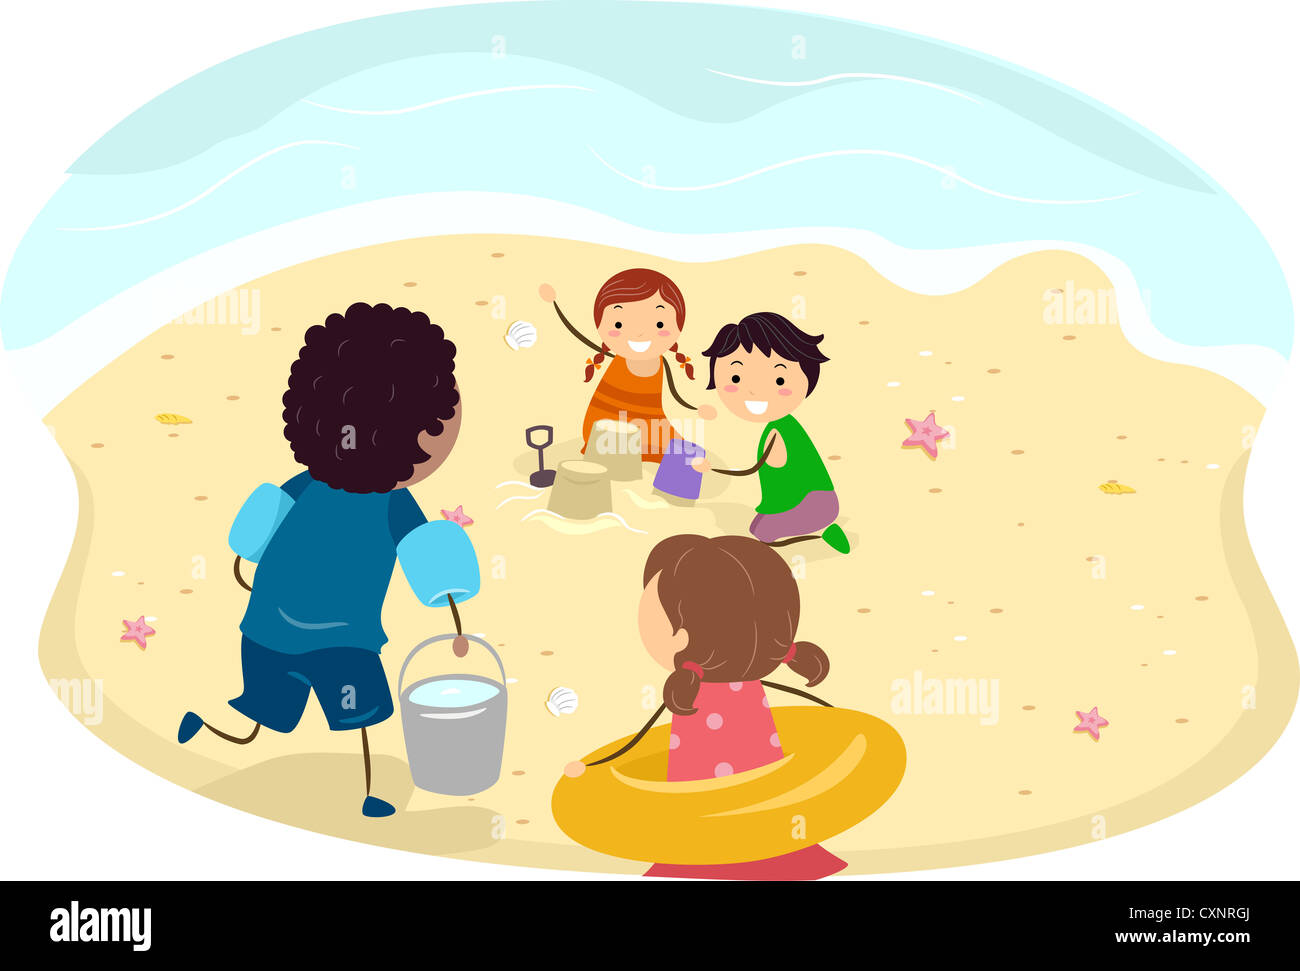 Illustration Of Kids Making A Sand Castle On The Beach